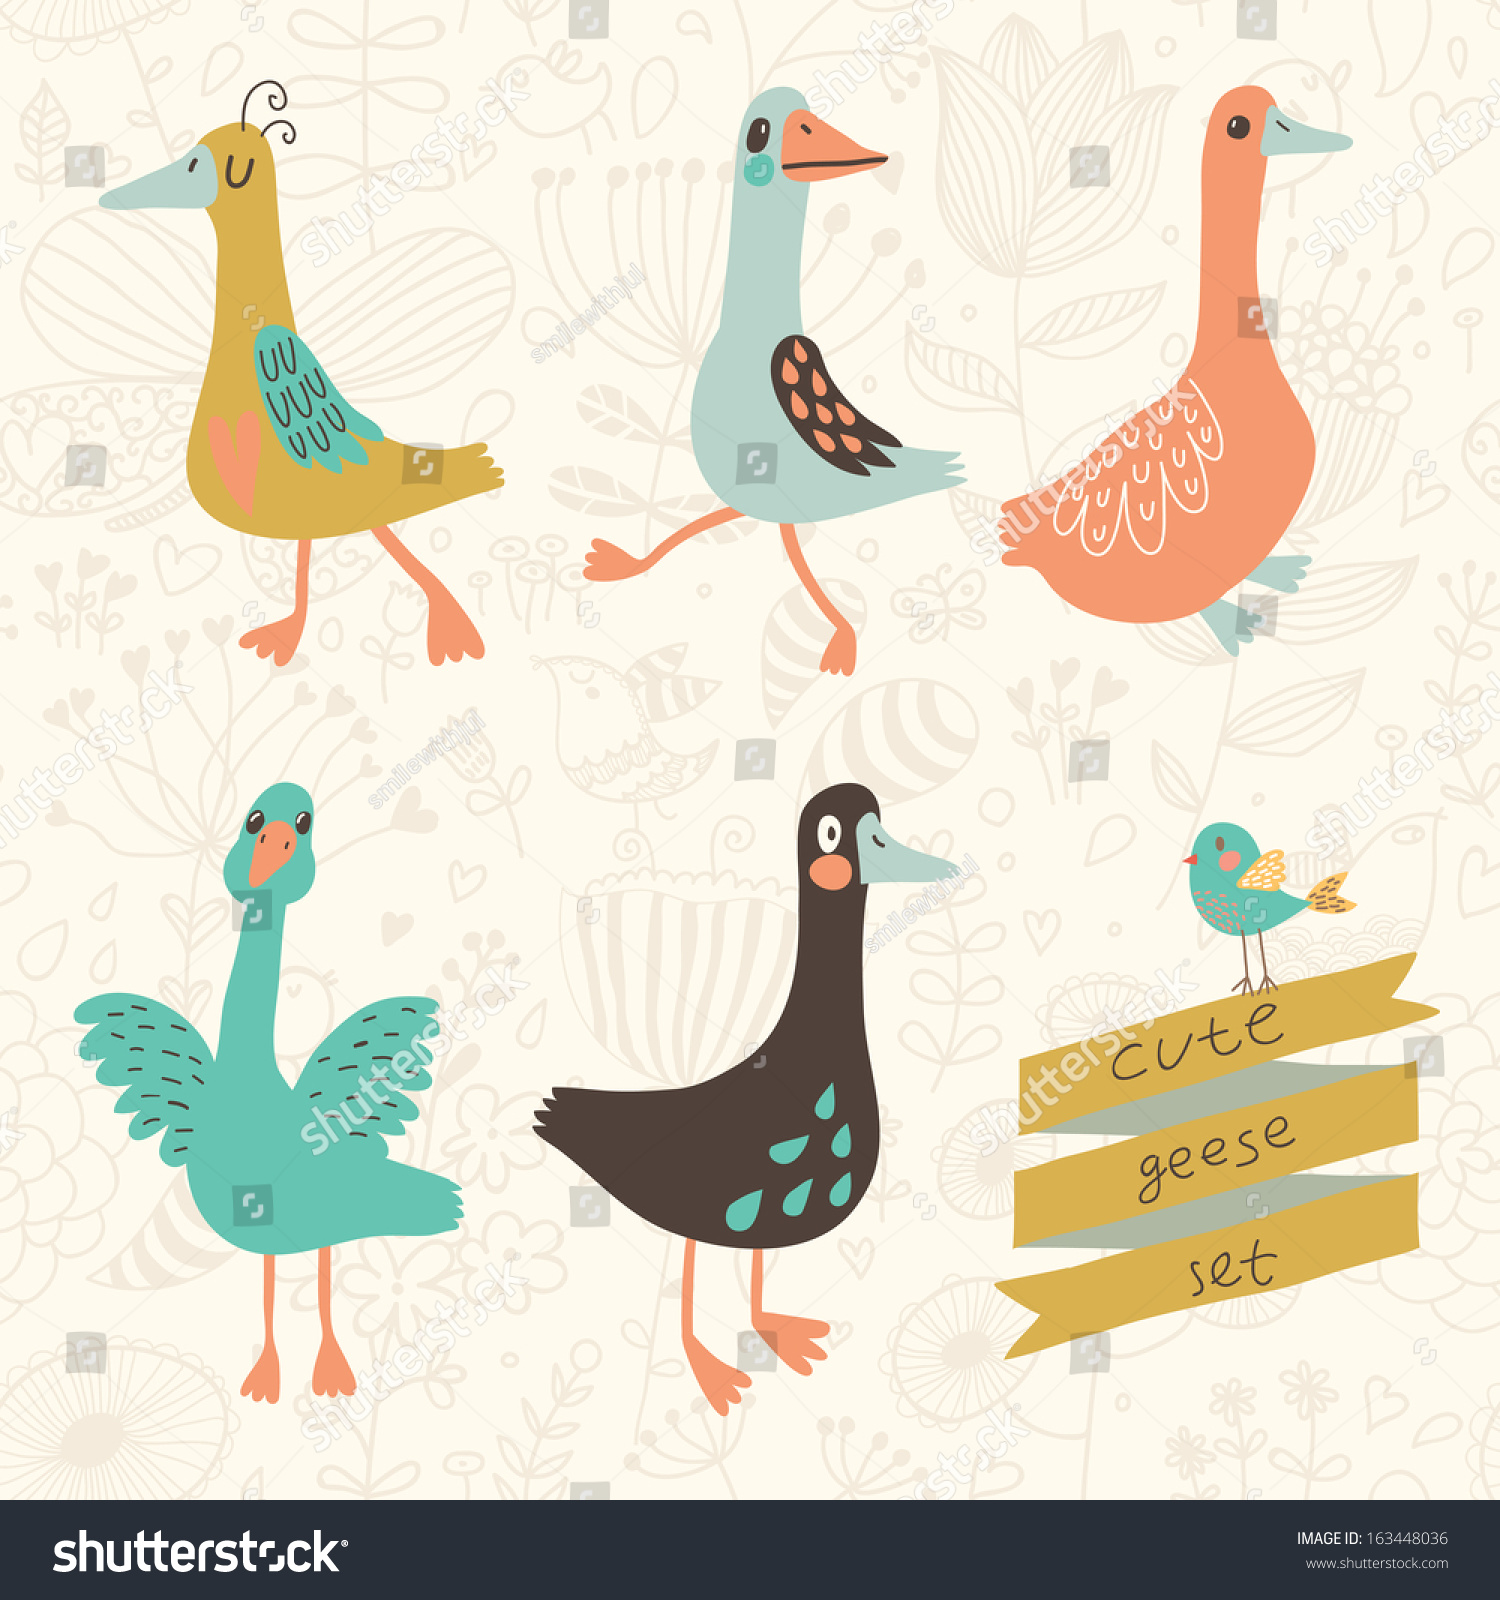 Can I Put Wallpaper On Top Of Wallpaper: Five Cute Geese Vector Set Cartoon Stock Vector 163448036